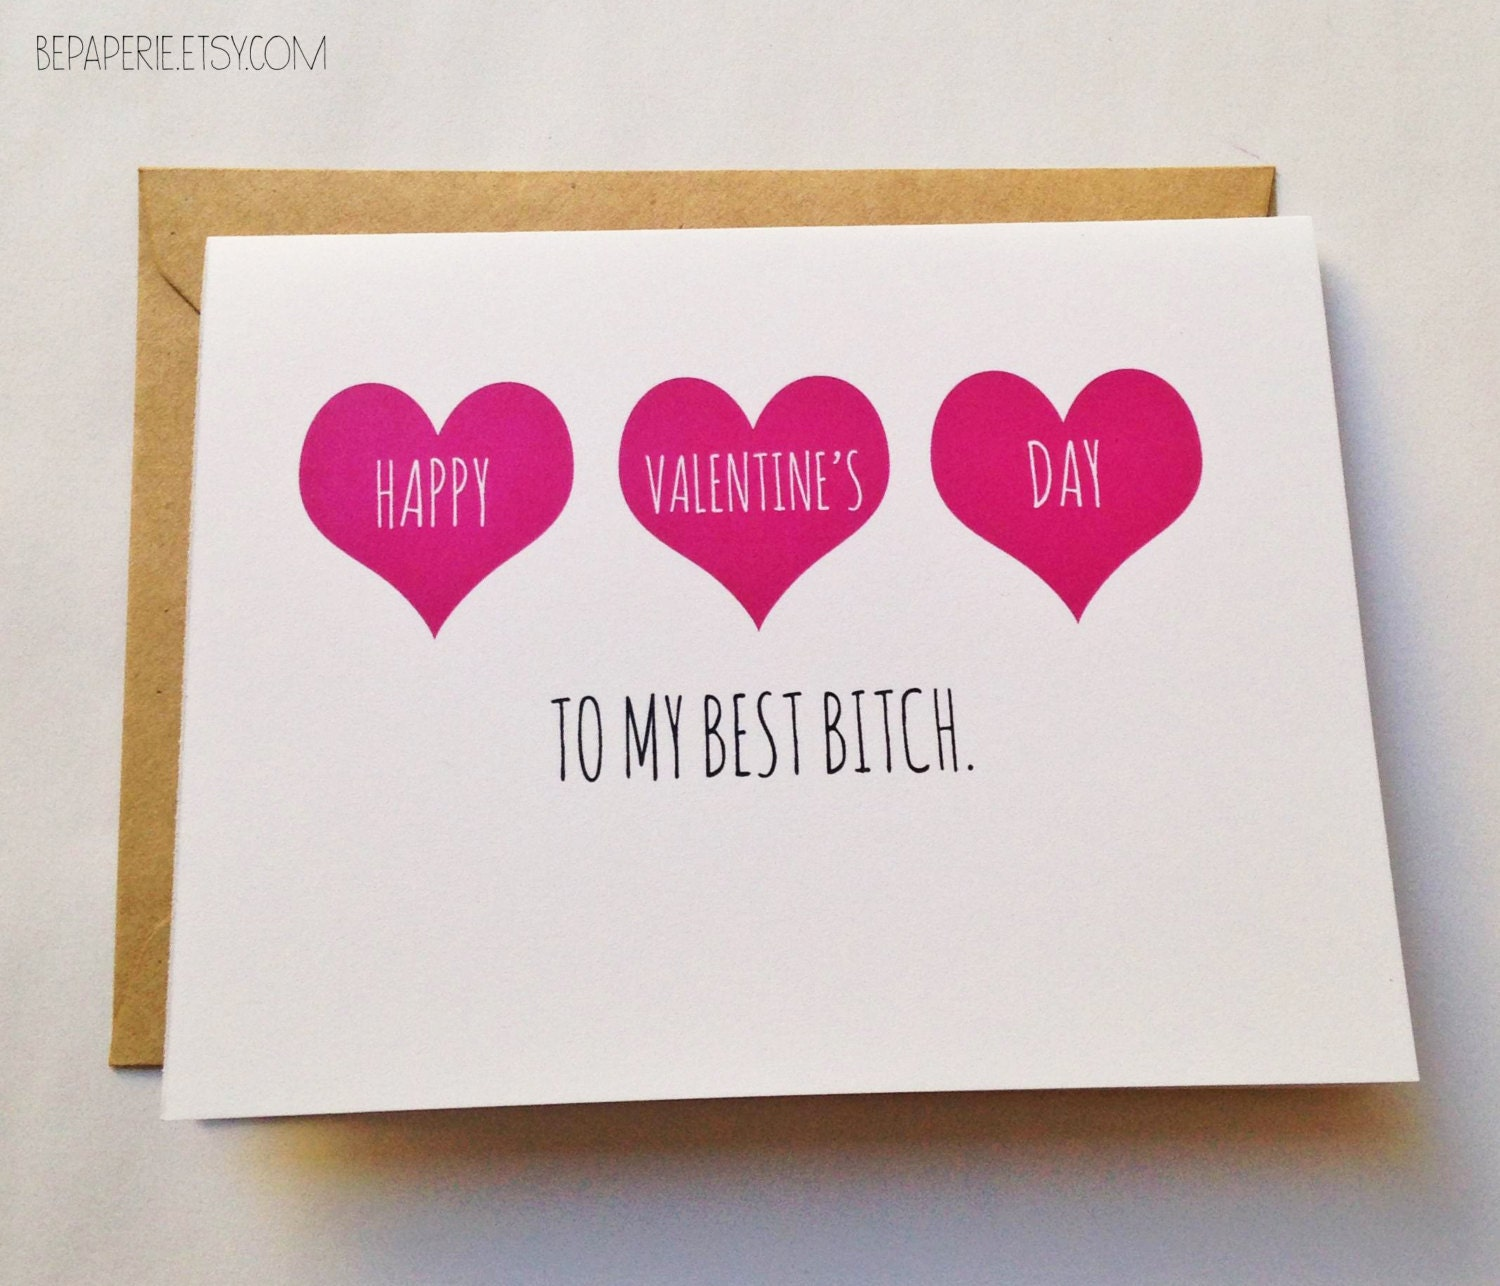 Friend valentine 39 s day card best friend valentine for What to get your best friend for valentines day